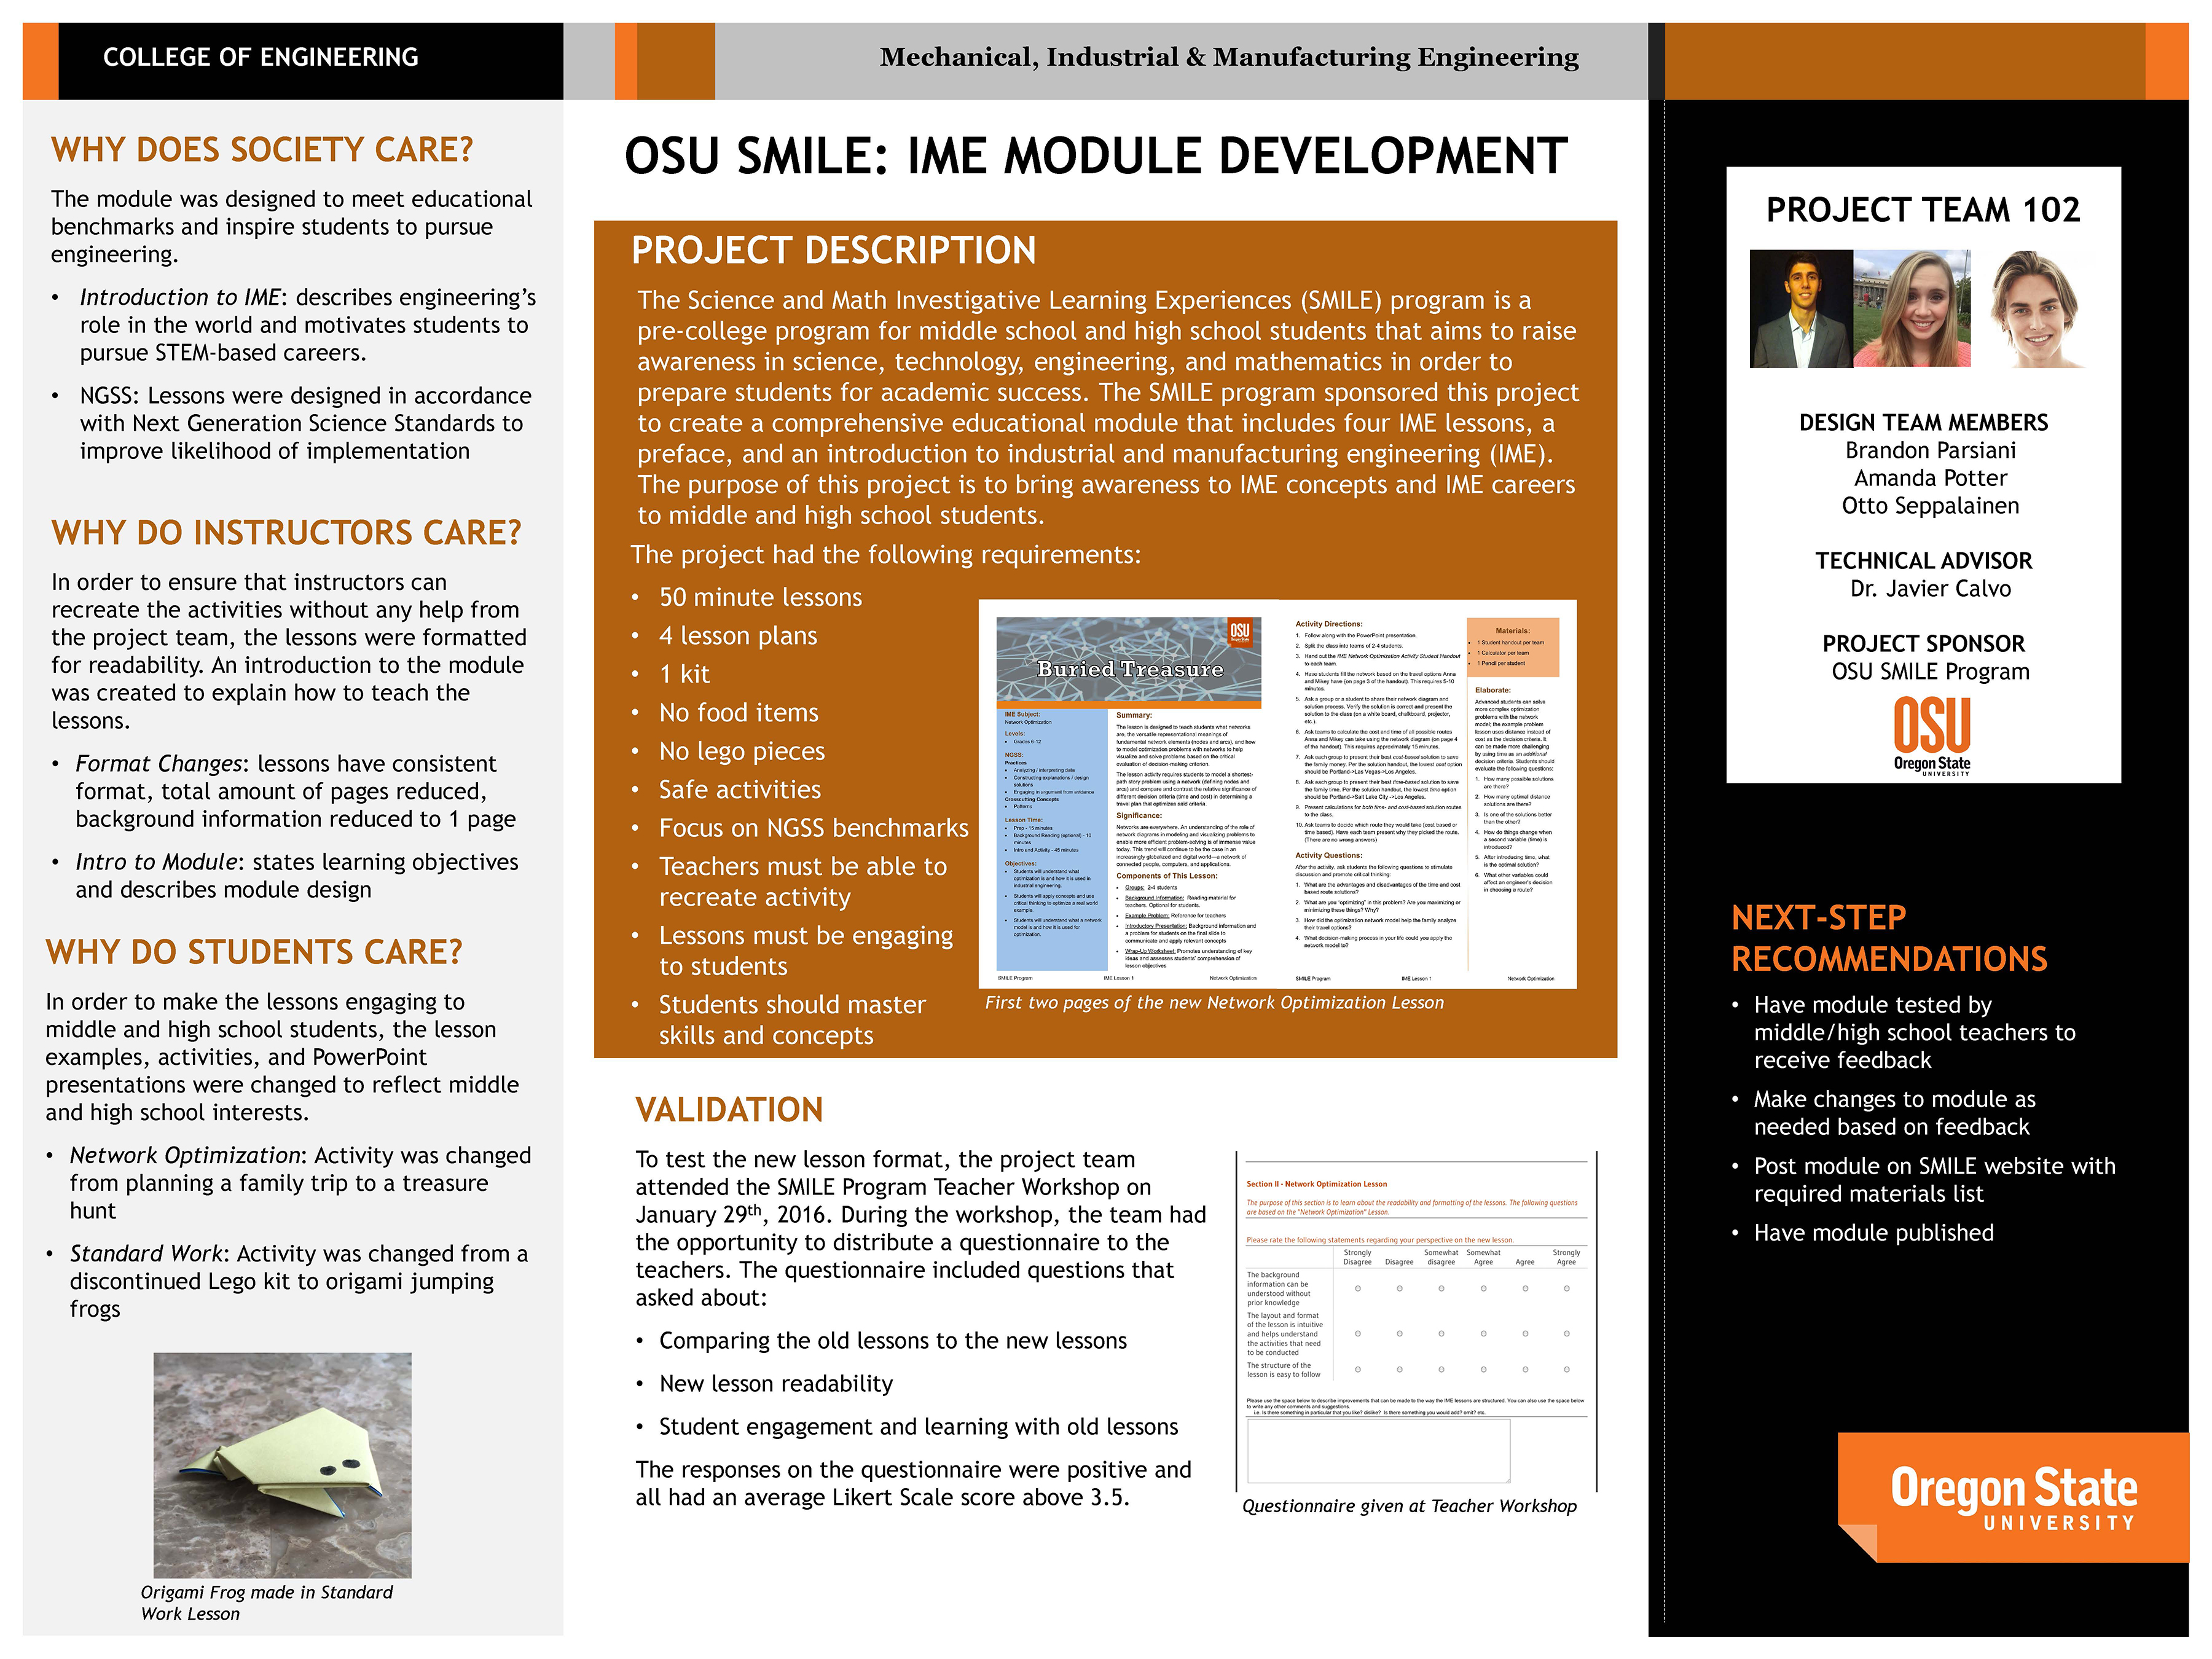 examples of mime capstone projects | mechanical, industrial, and, Presentation templates